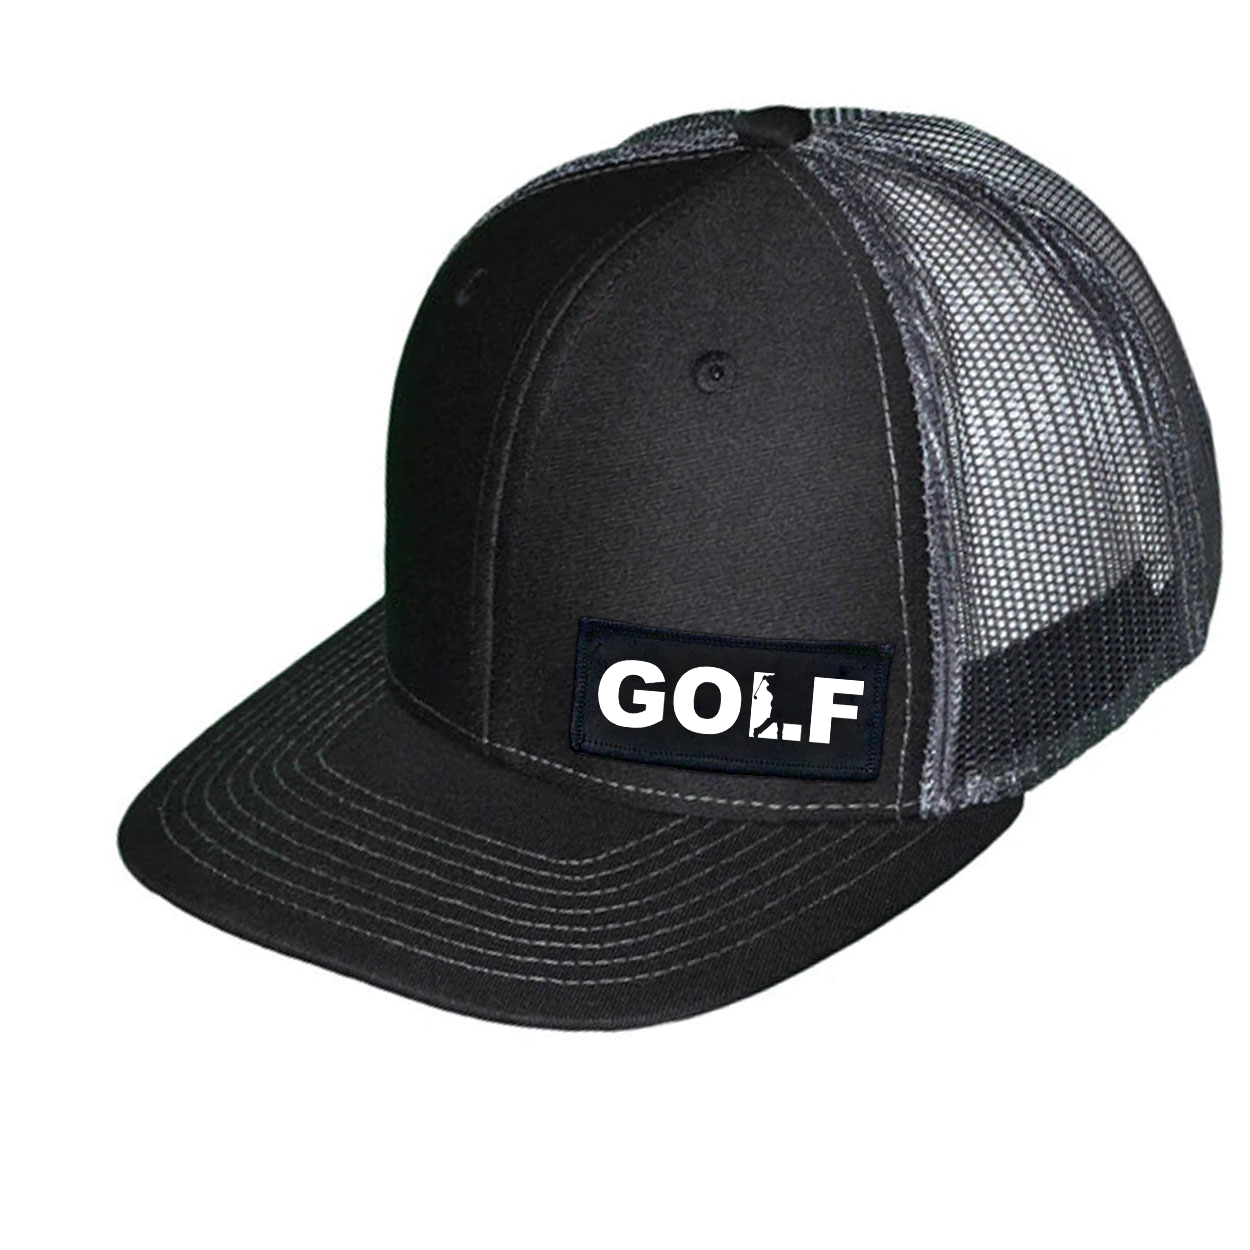 Golf Swing Logo Night Out Woven Patch Snapback Trucker Hat Black/Dark Gray (White Logo)